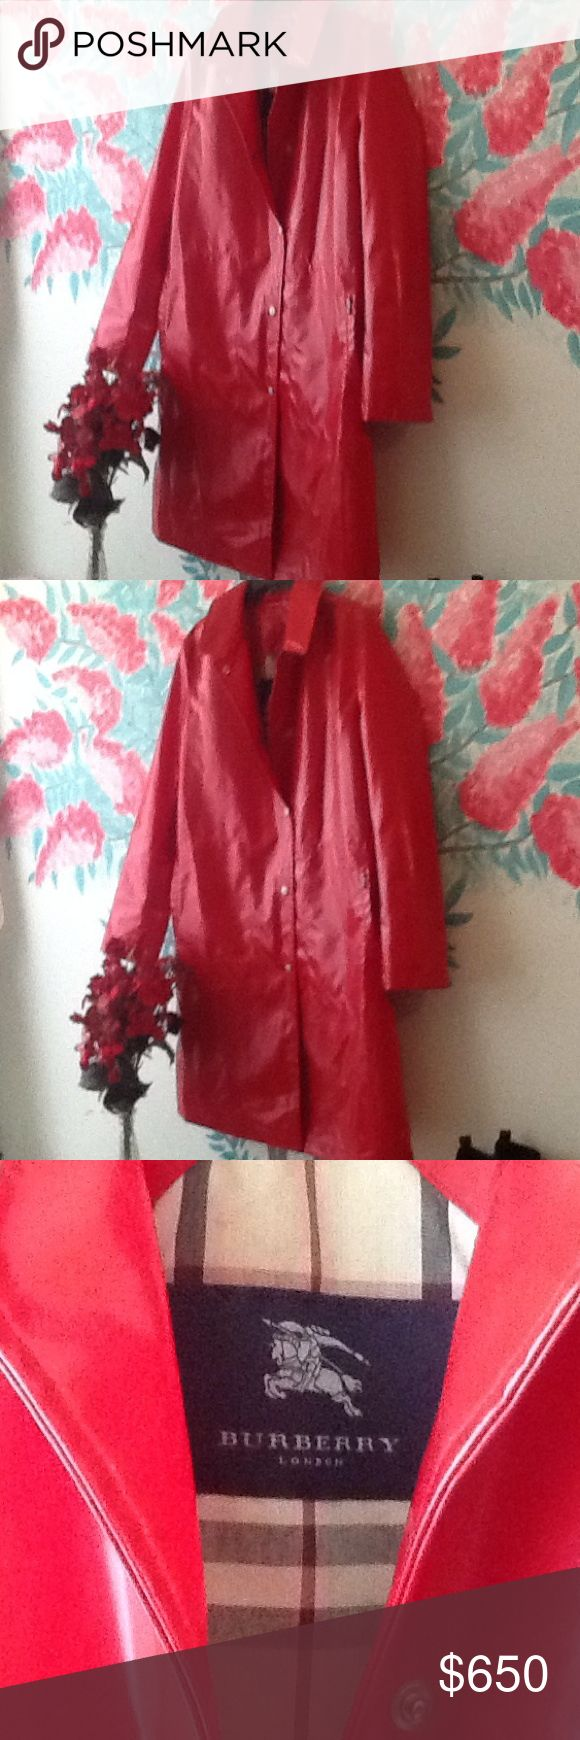 Burberry Red Patent Trench Coat Pristine Condition. SUPER CLEAANNN!!! No rips, holes, or stains of any kind. Burberry Jackets & Coats Trench Coats